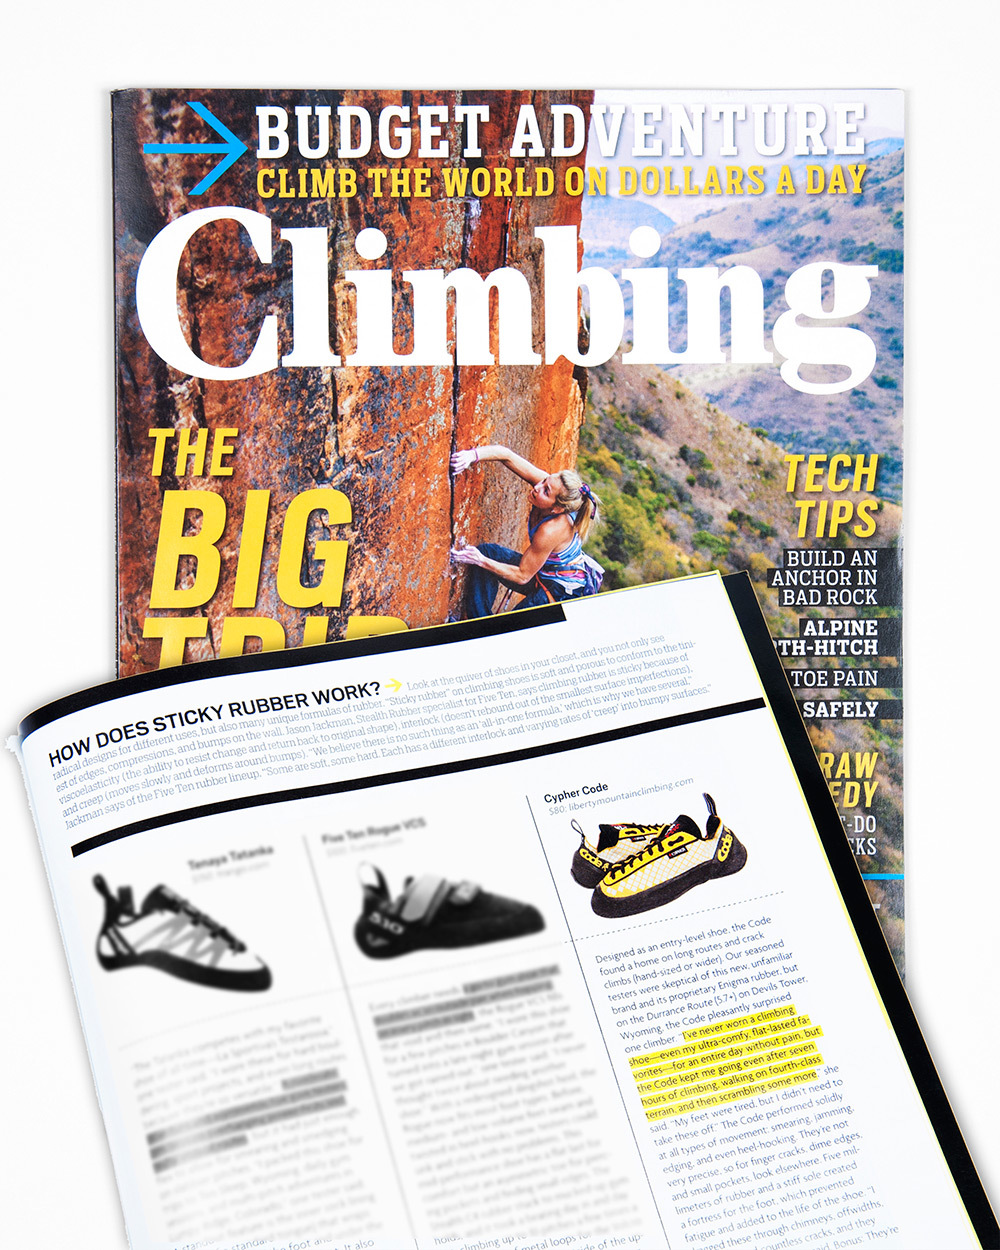 Cypher Code in October 2013 issue of Climbing Magazine.